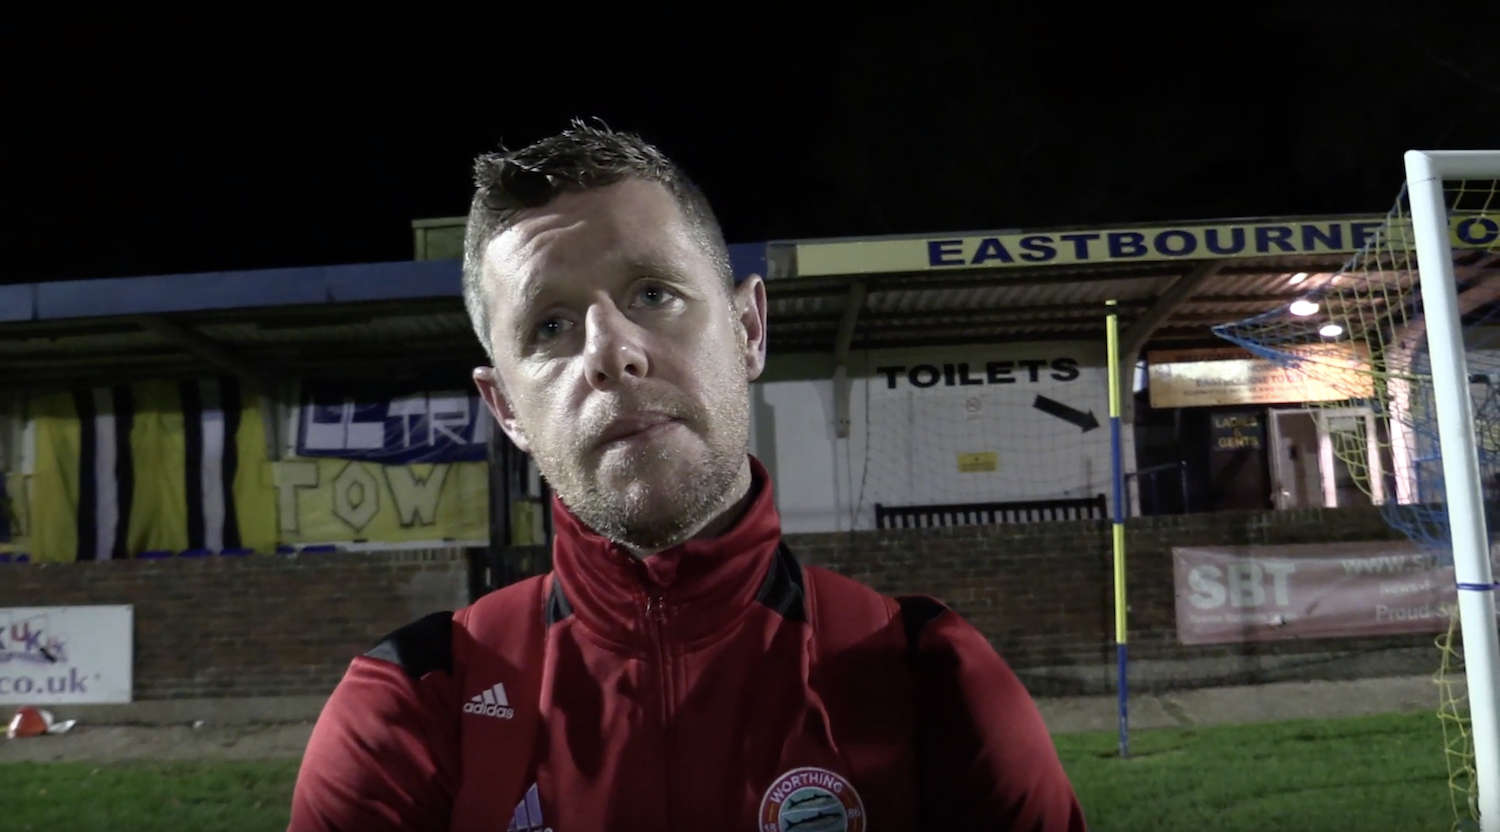 Post Match Interview: Eastbourne Town [A] – Cup